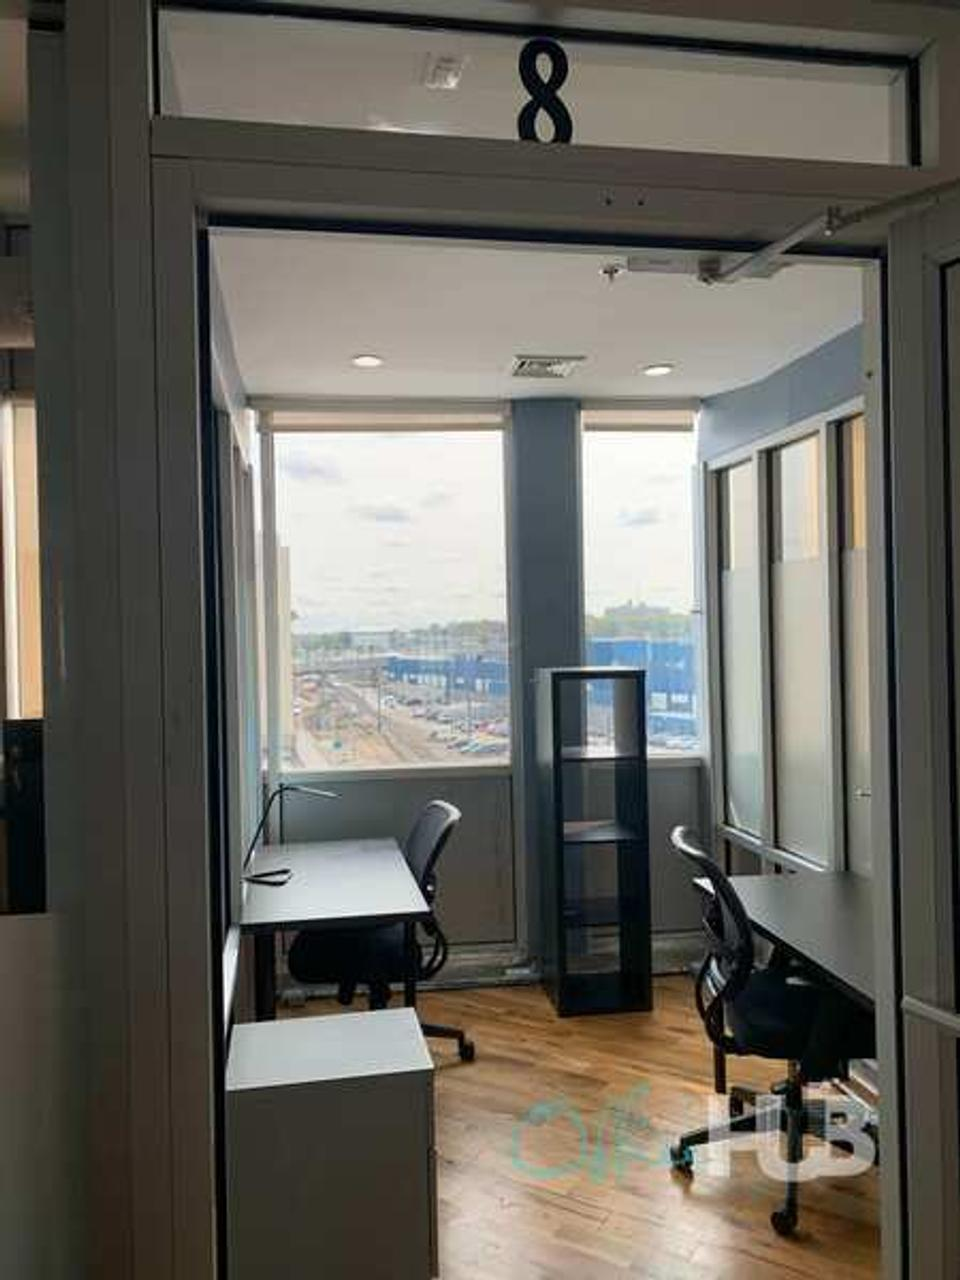 5 Person Private Office For Lease At 34-18 Northern Boulevard, Long Island City, New York, 11101 - image 1